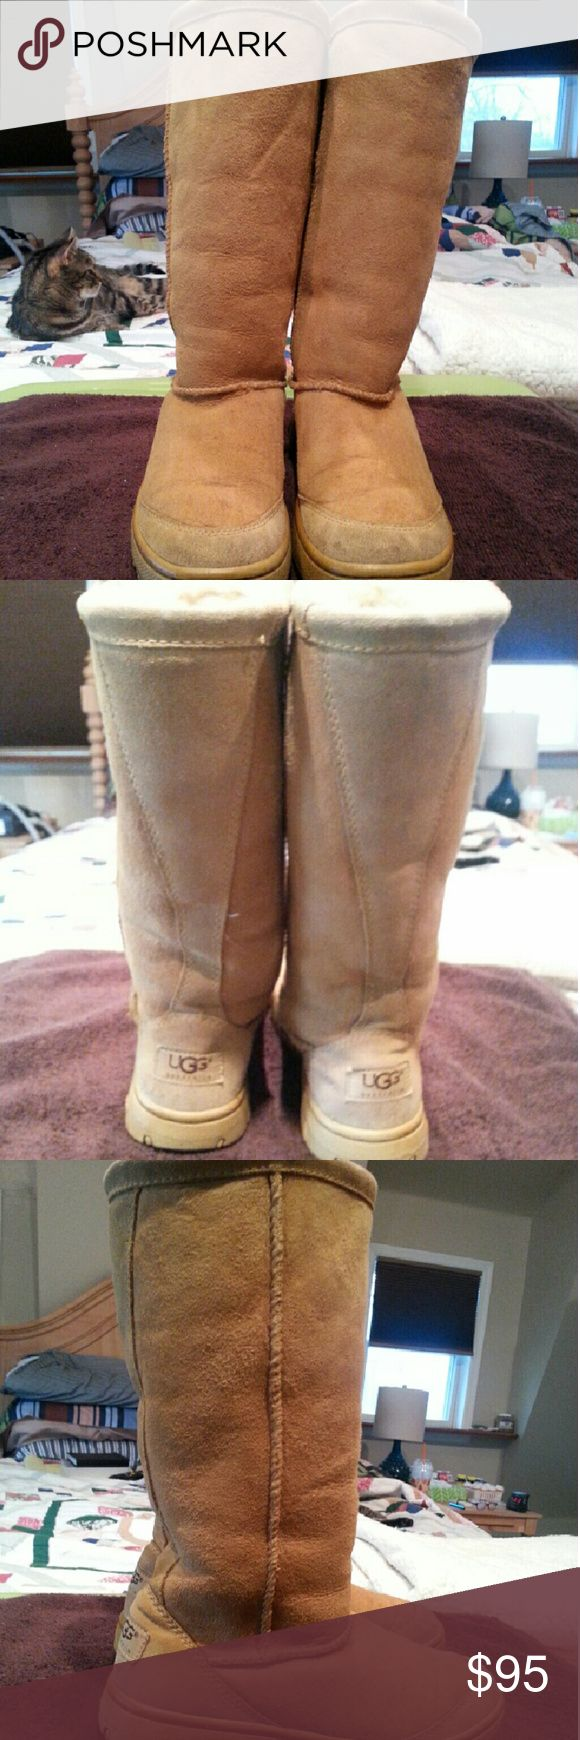 UGG AUSTRALIA TALL TAN BOOTS Gently used and professionally cleaned.  Women's size 5. Very warm and cozy! Make an offer! UGG Shoes Winter & Rain Boots